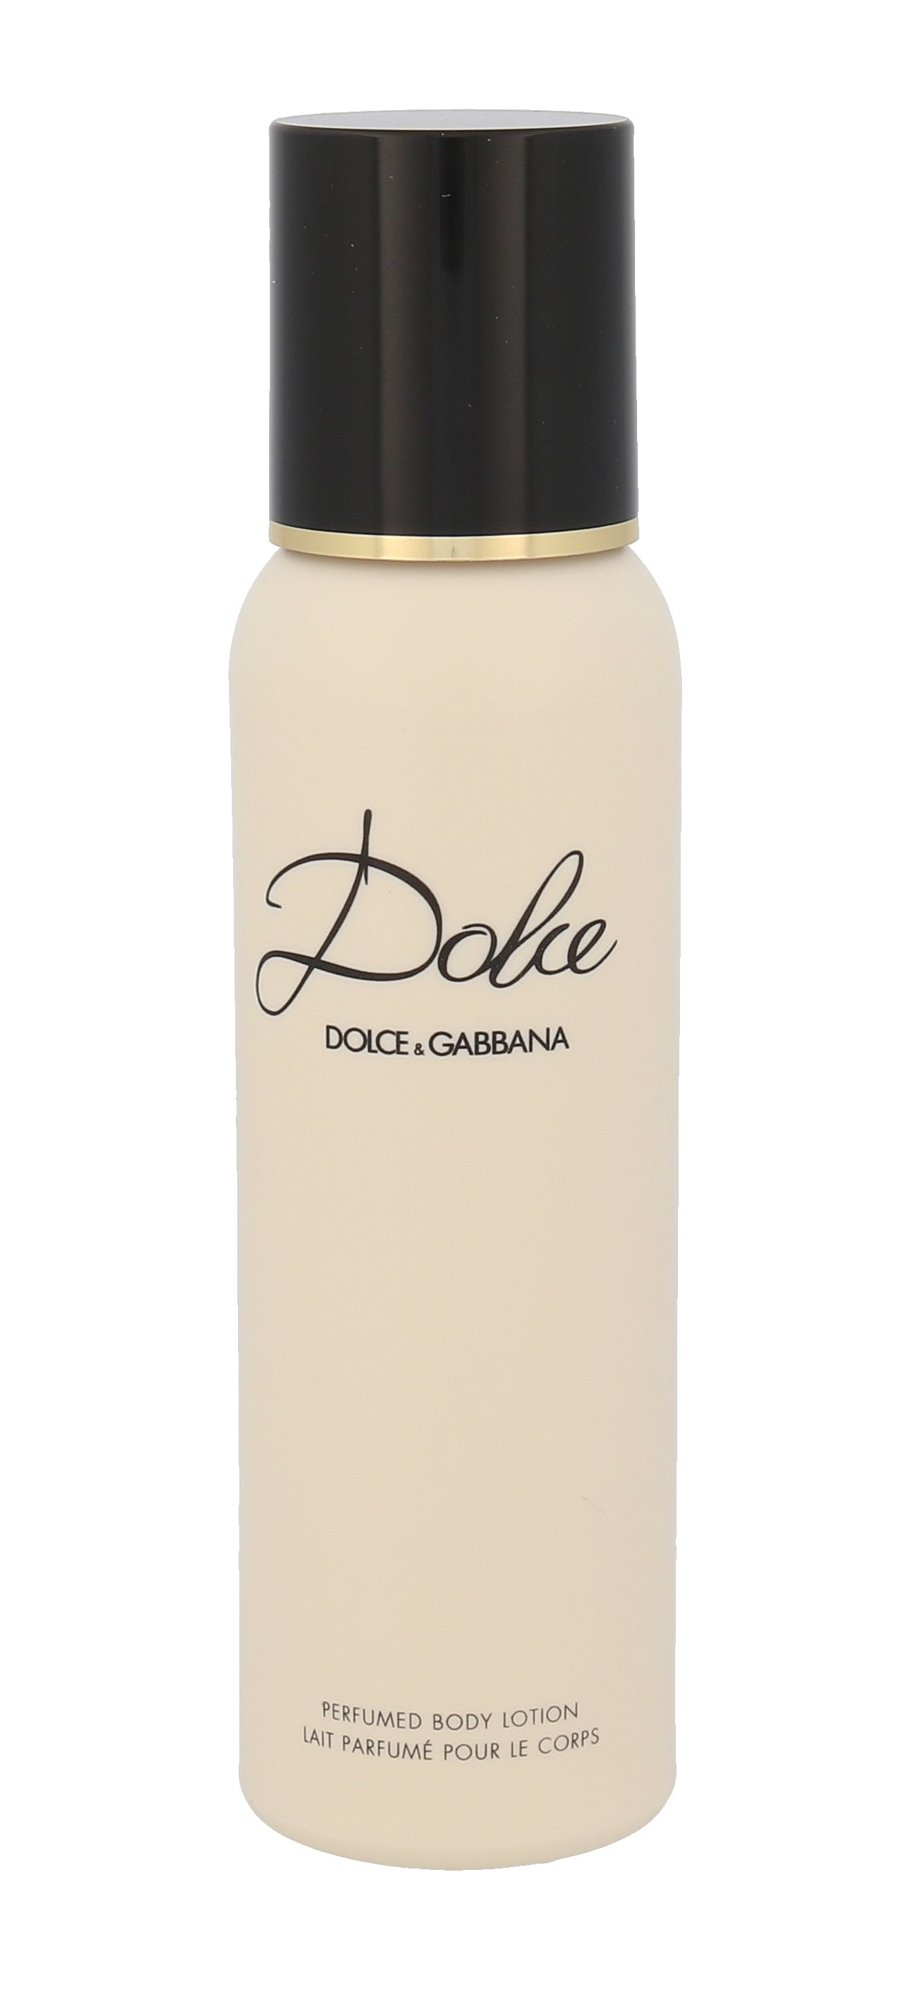 Dolce&Gabbana Dolce Body lotion 100ml